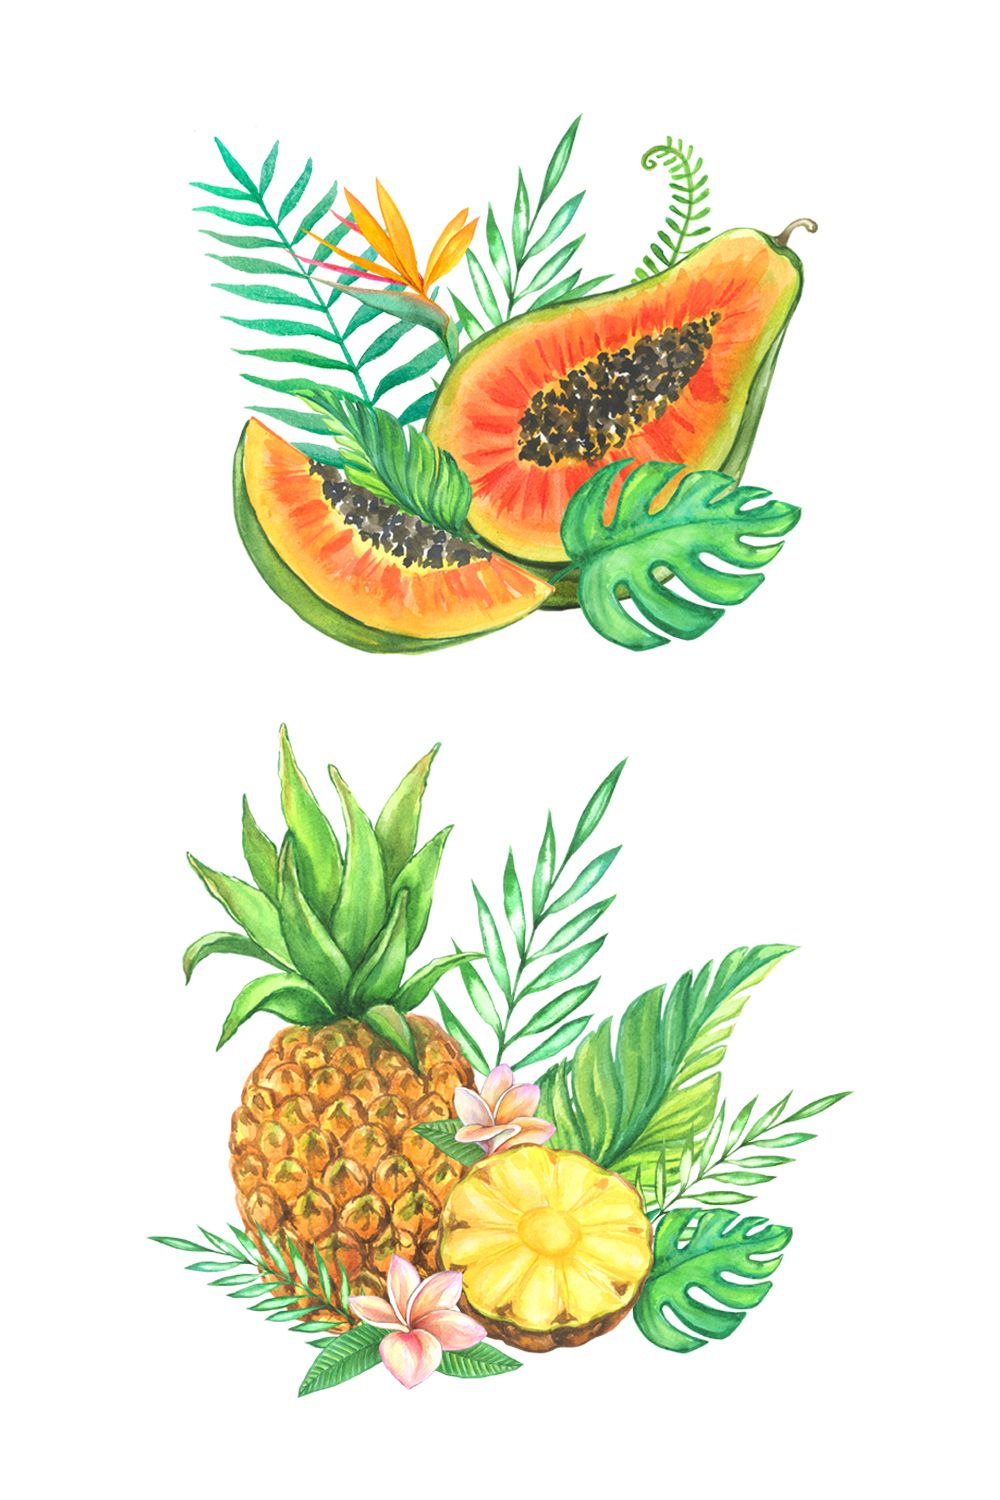 Fruit Clipart Beach Clipart Watercolor Tropical Fruit Etsy In 2021 Fruits Drawing Watercolor Fruit Vegetable Illustration